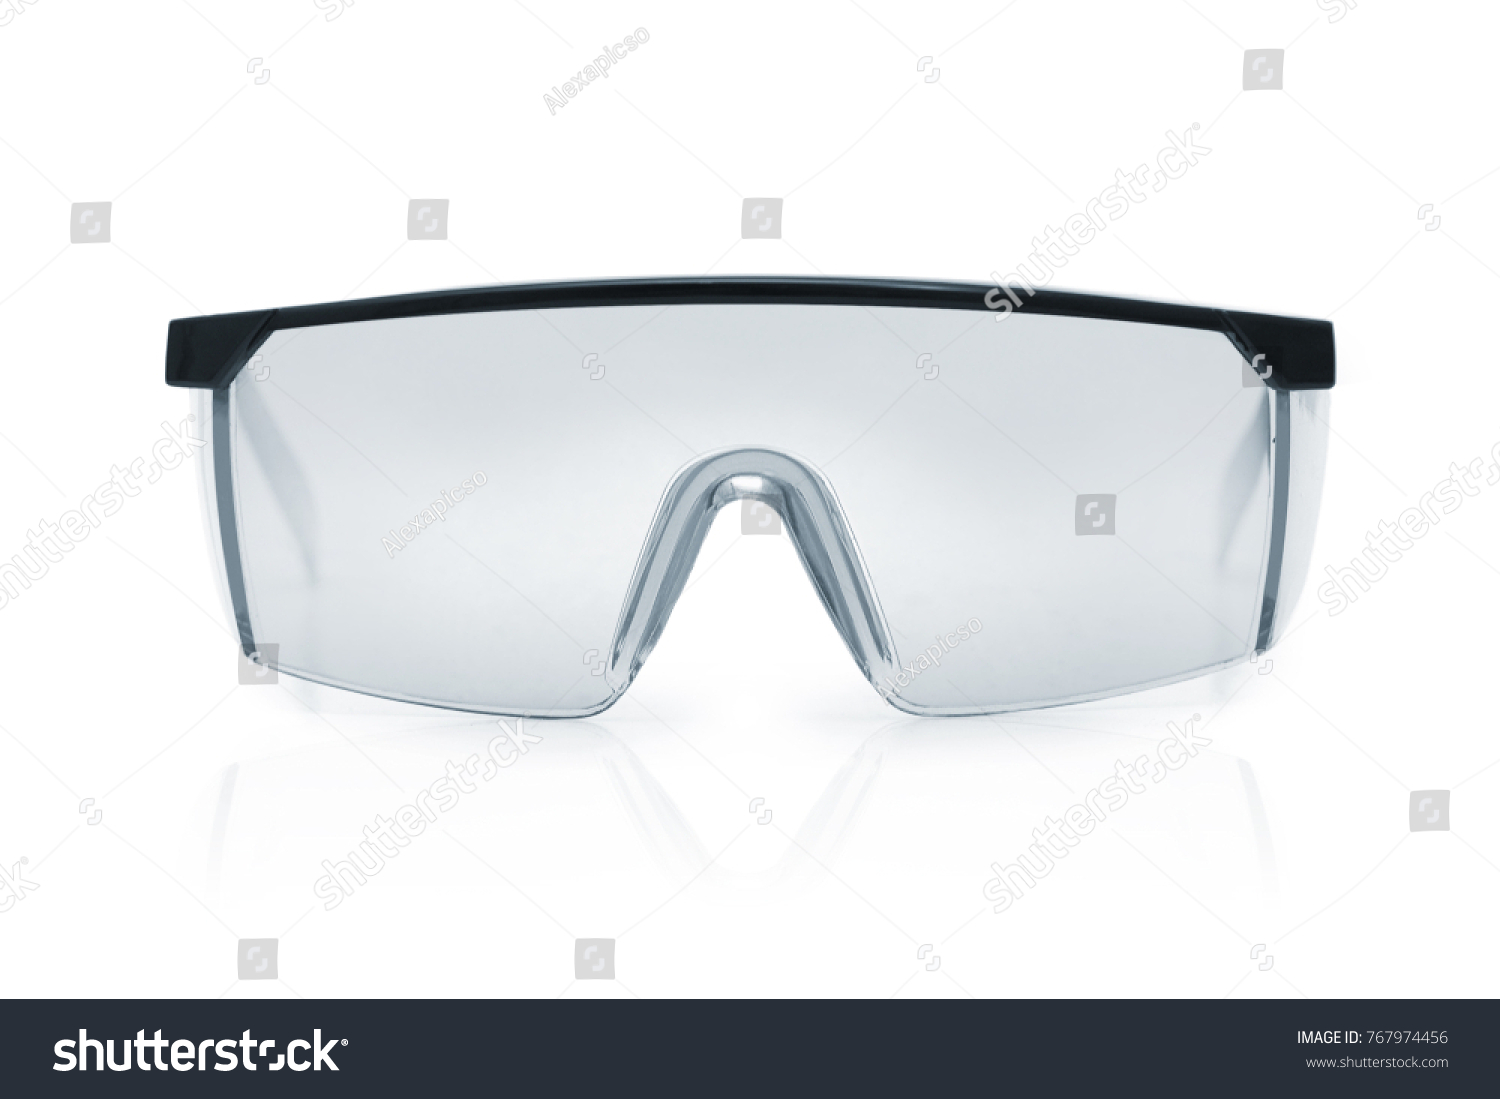 Goggles or Safety Glasses. Protective workwear to protect human eyes. Single object isolated over a white background. #767974456